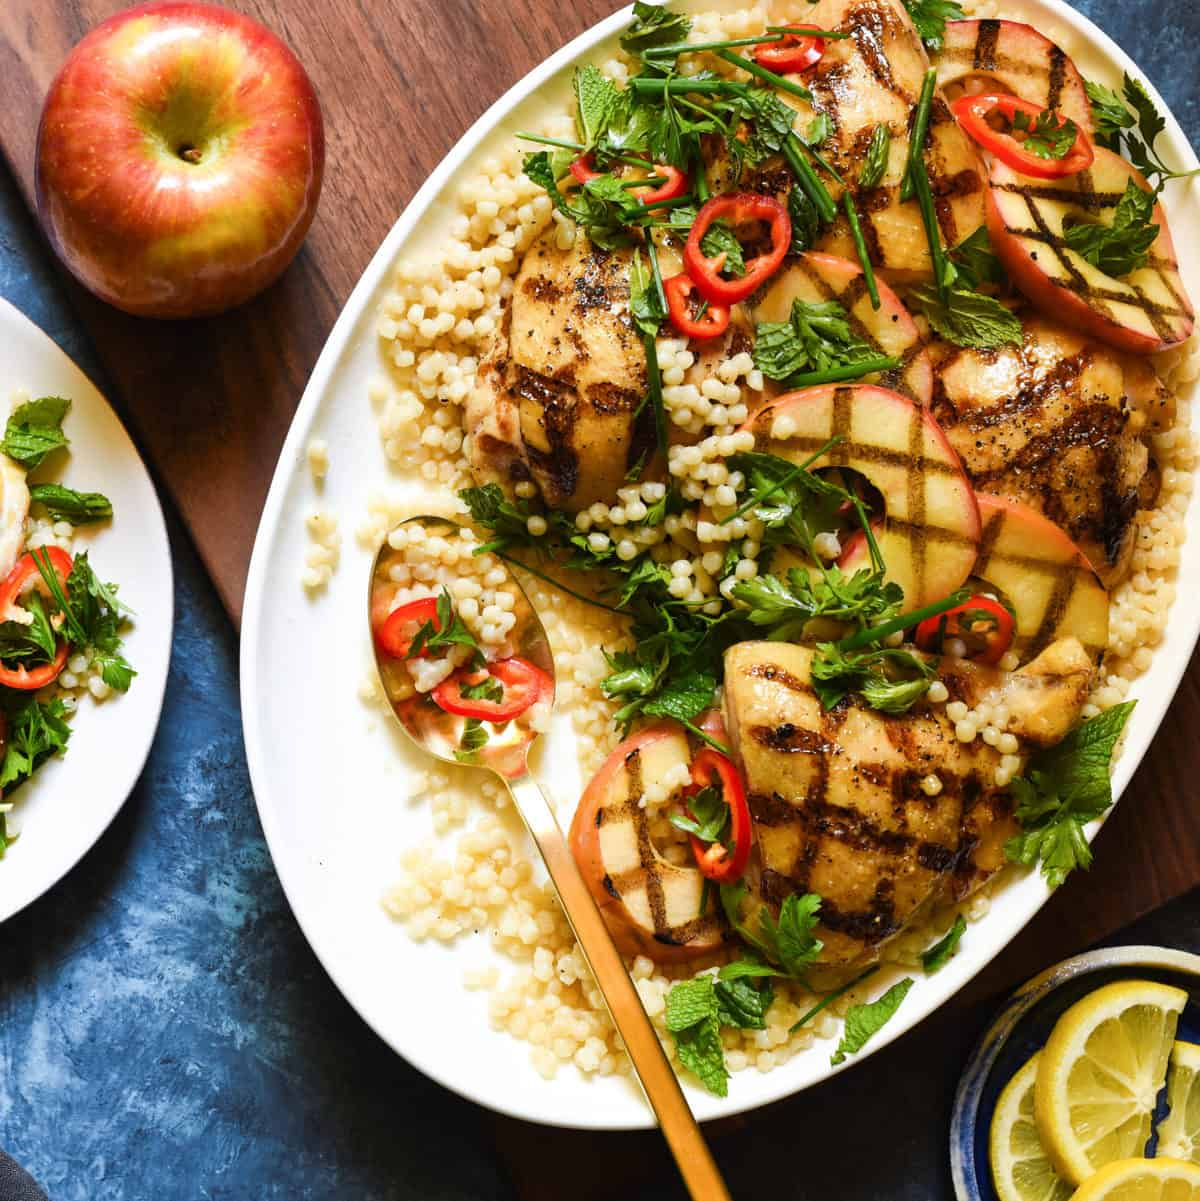 Grilled Chicken & Apples with Couscous - A beautiful, healthful grilled meal for summer or fall!   foxeslovelemons.com